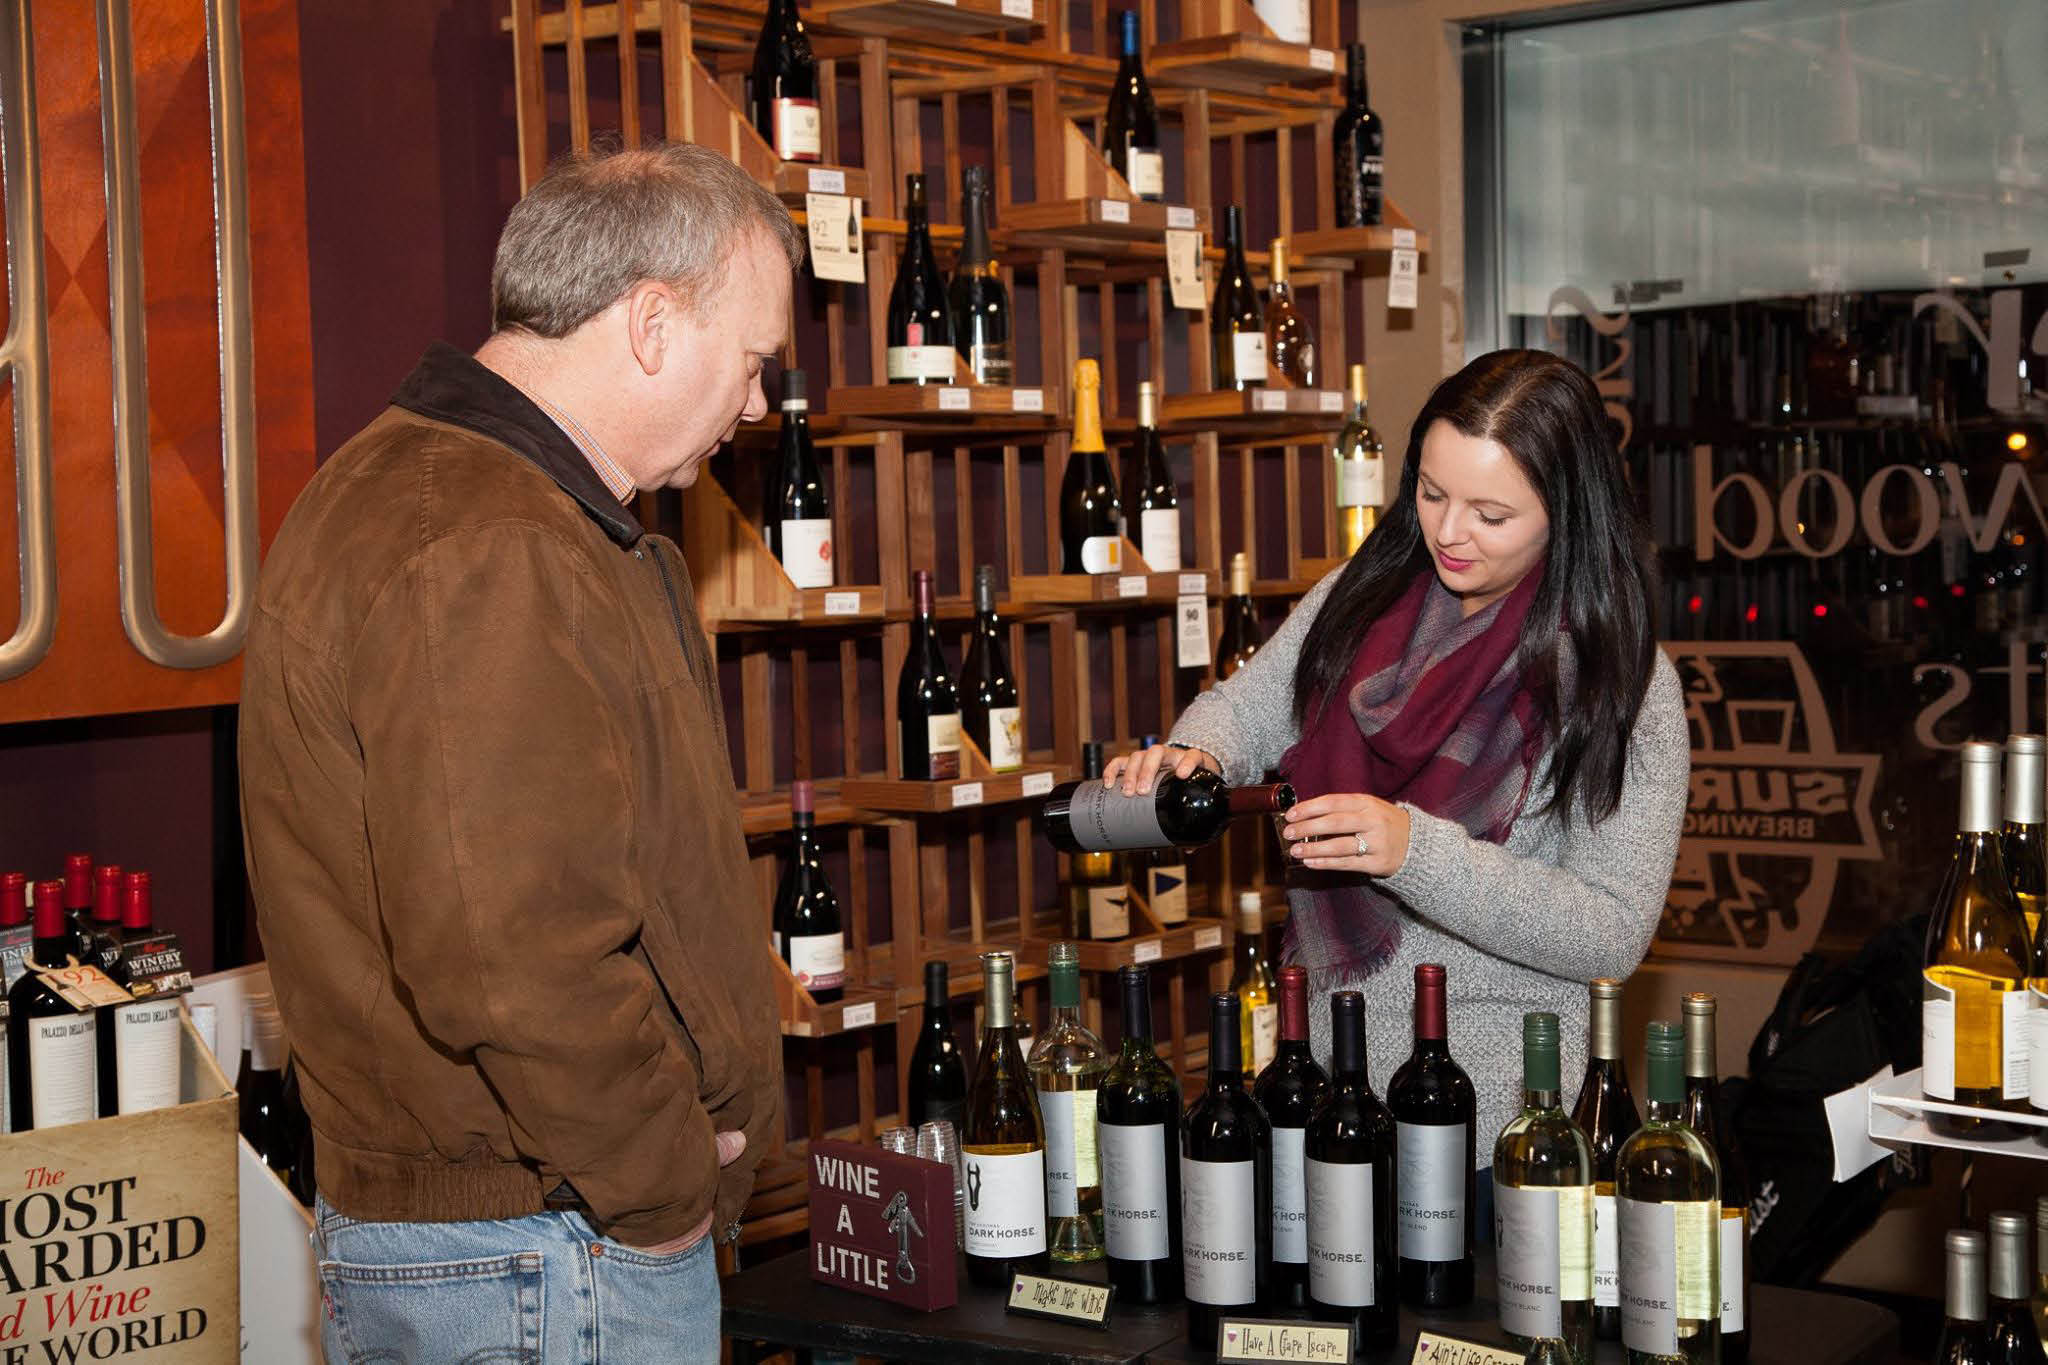 The Bottle Shop of Grafton wine tasting in Ozaukee County